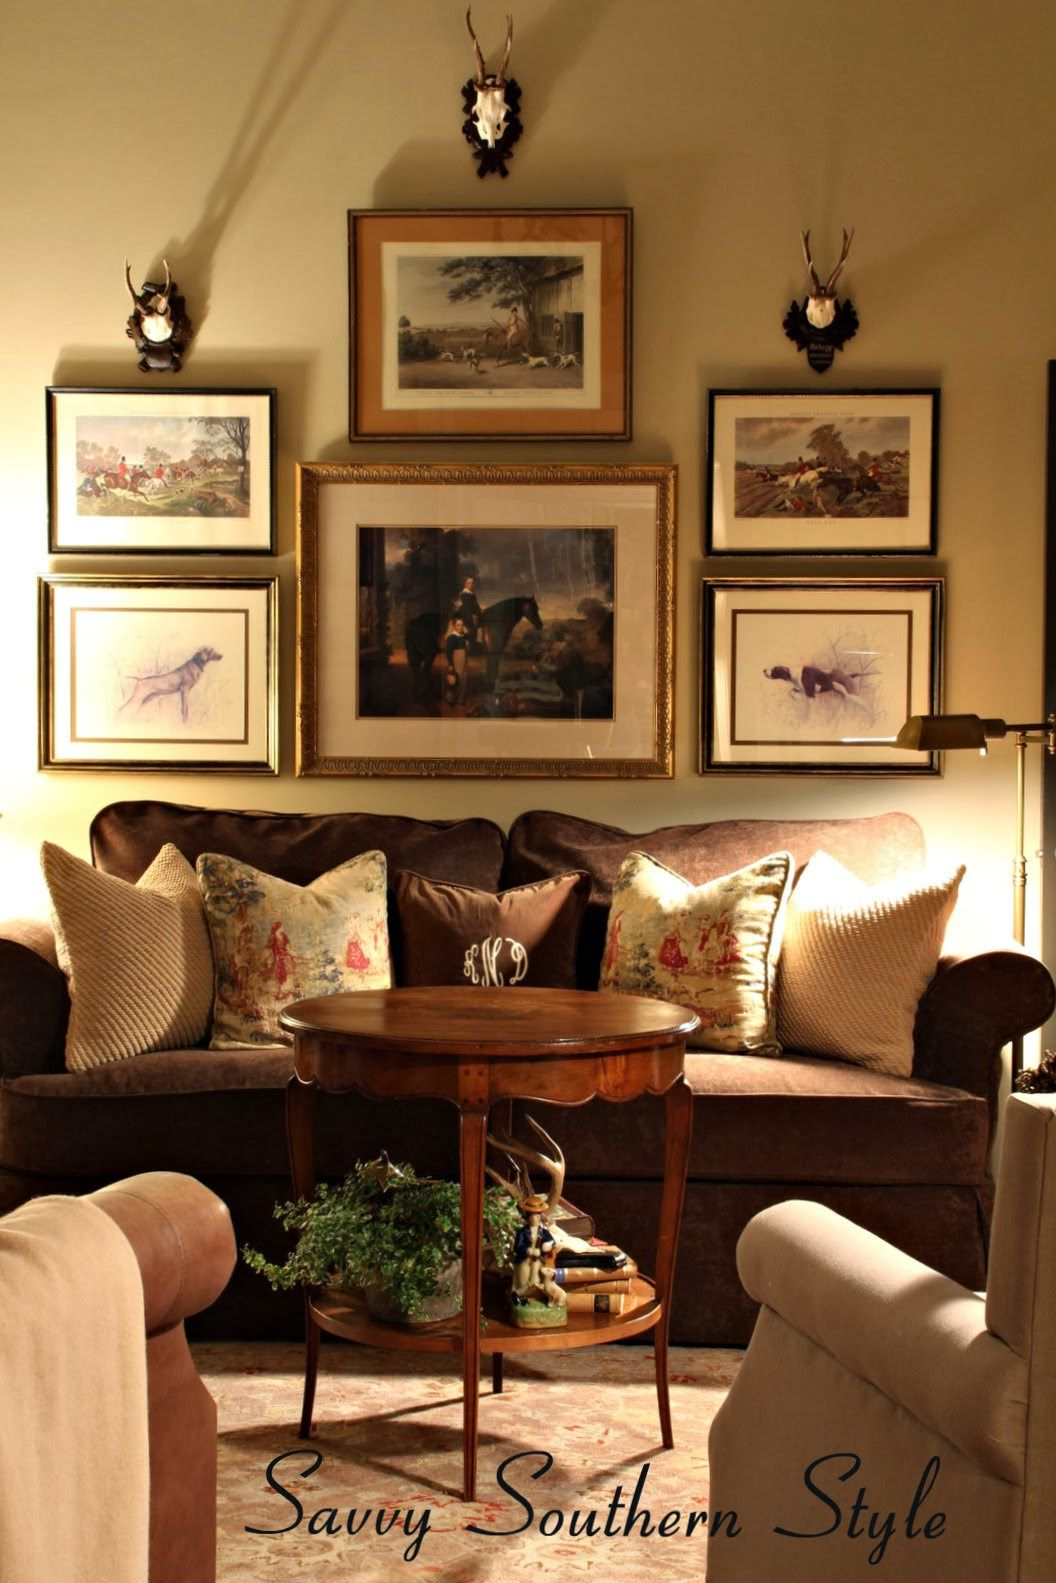 Living Room Decorating Southern Style 1000 images about gallery walls on pinterest galleries frames and art walls